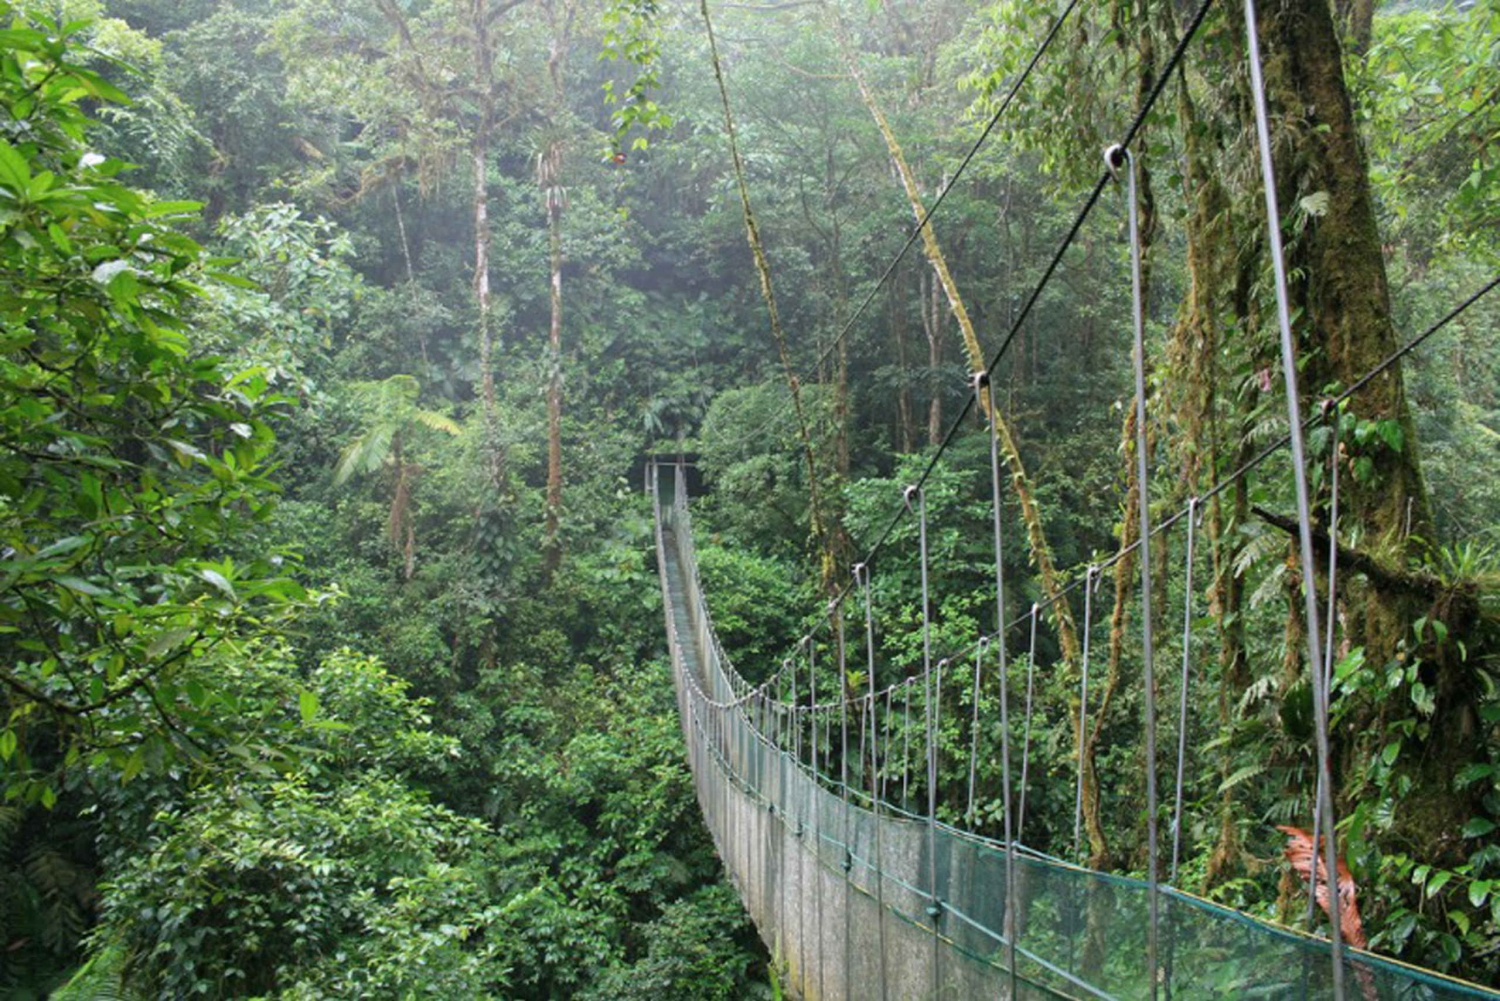 Arenal Volcano: Full-Day Hike from San Jose